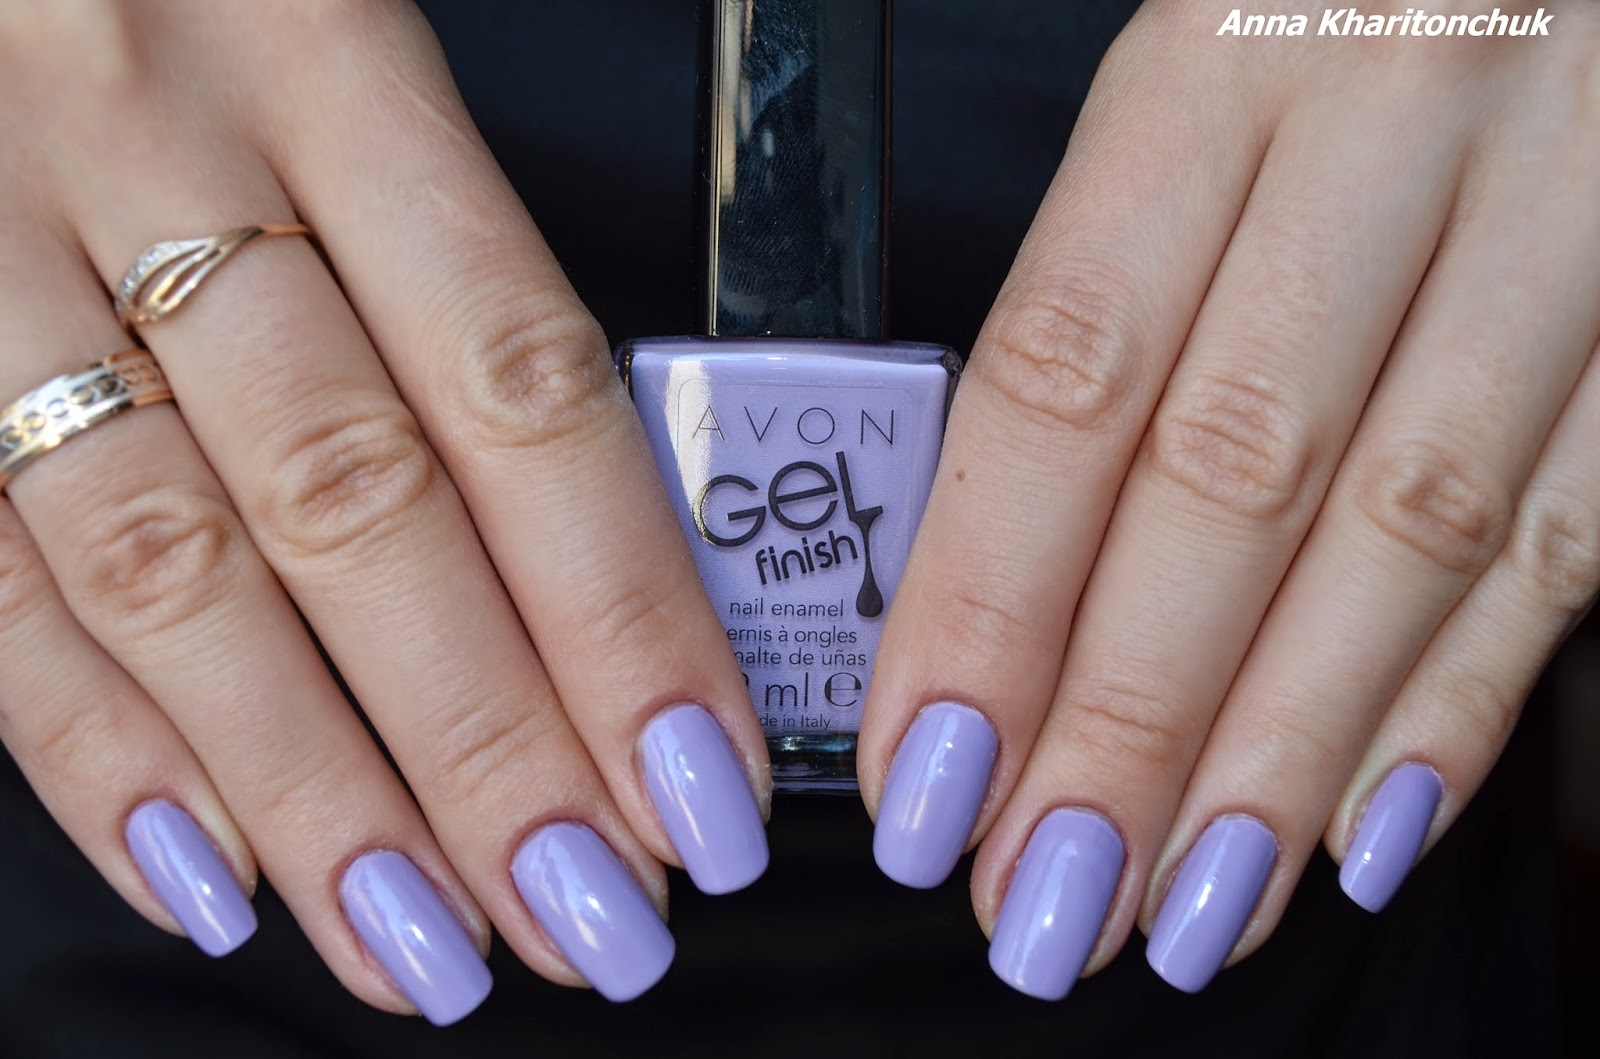 Avon Gel Finish Lavander Sky